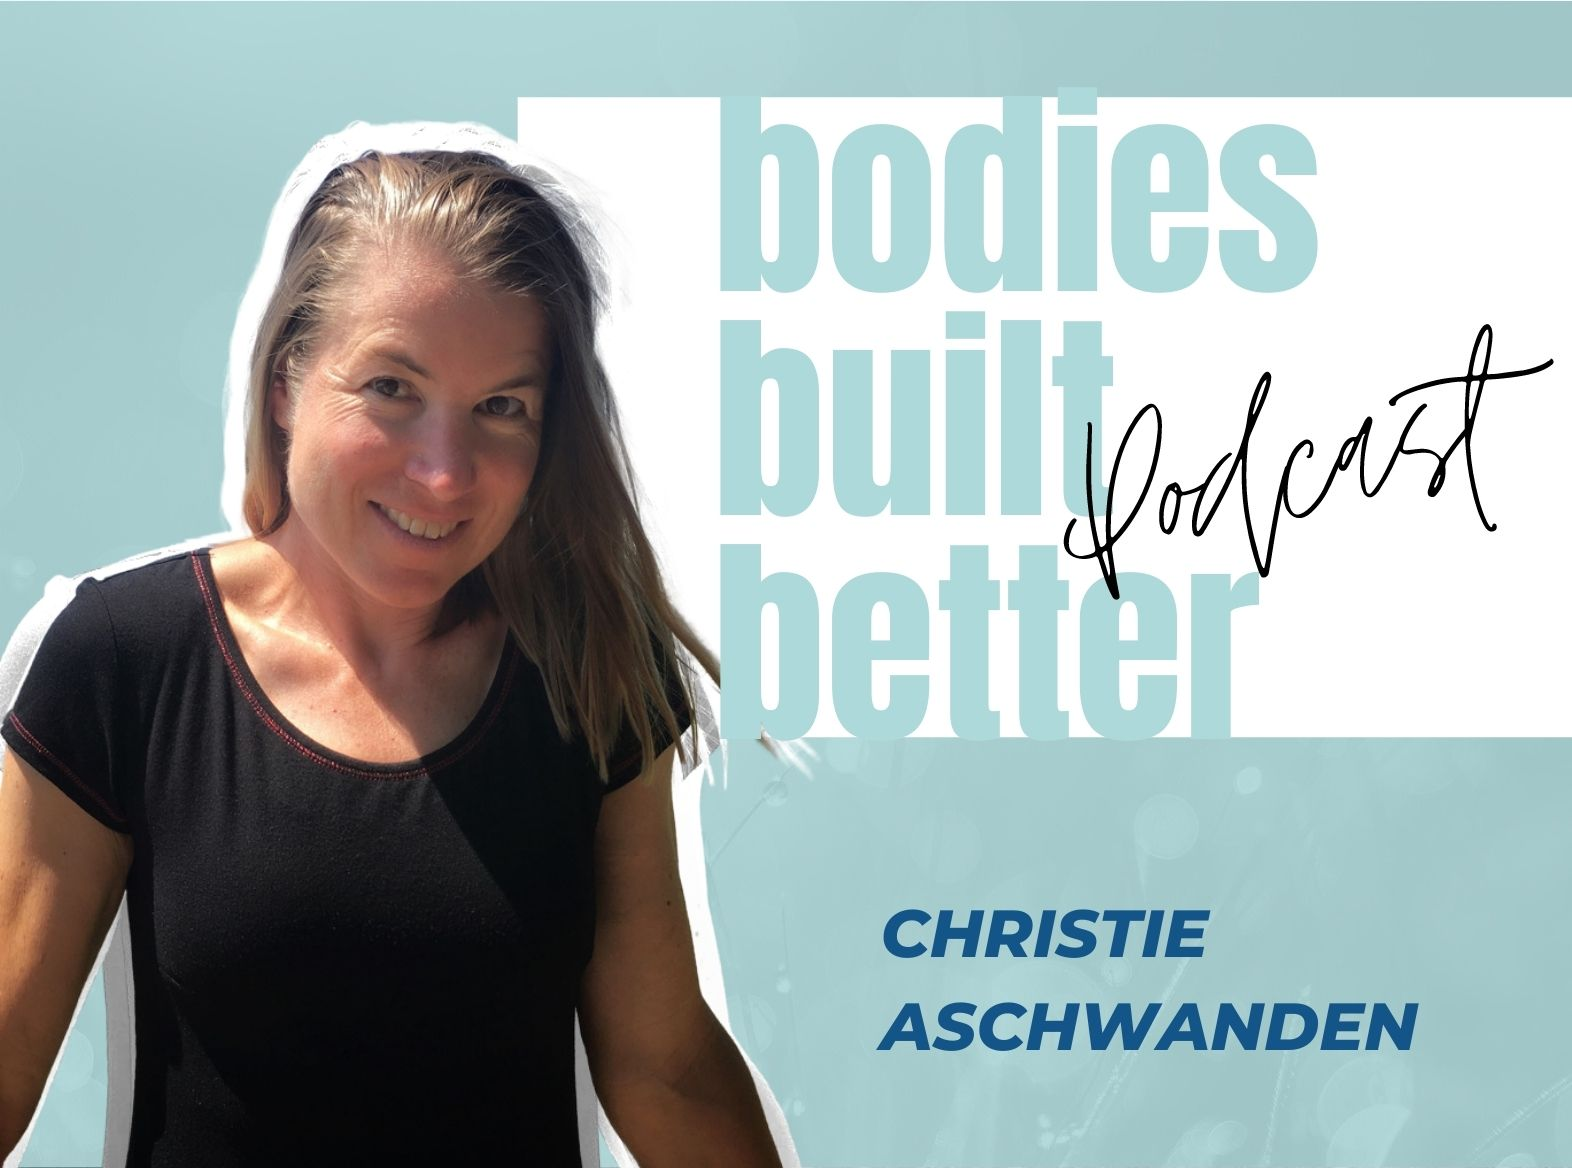 CHRISTIE ASCHWANDEN – Recovery Myths Busted and Everything You Need to Know Before Your Next Training Session